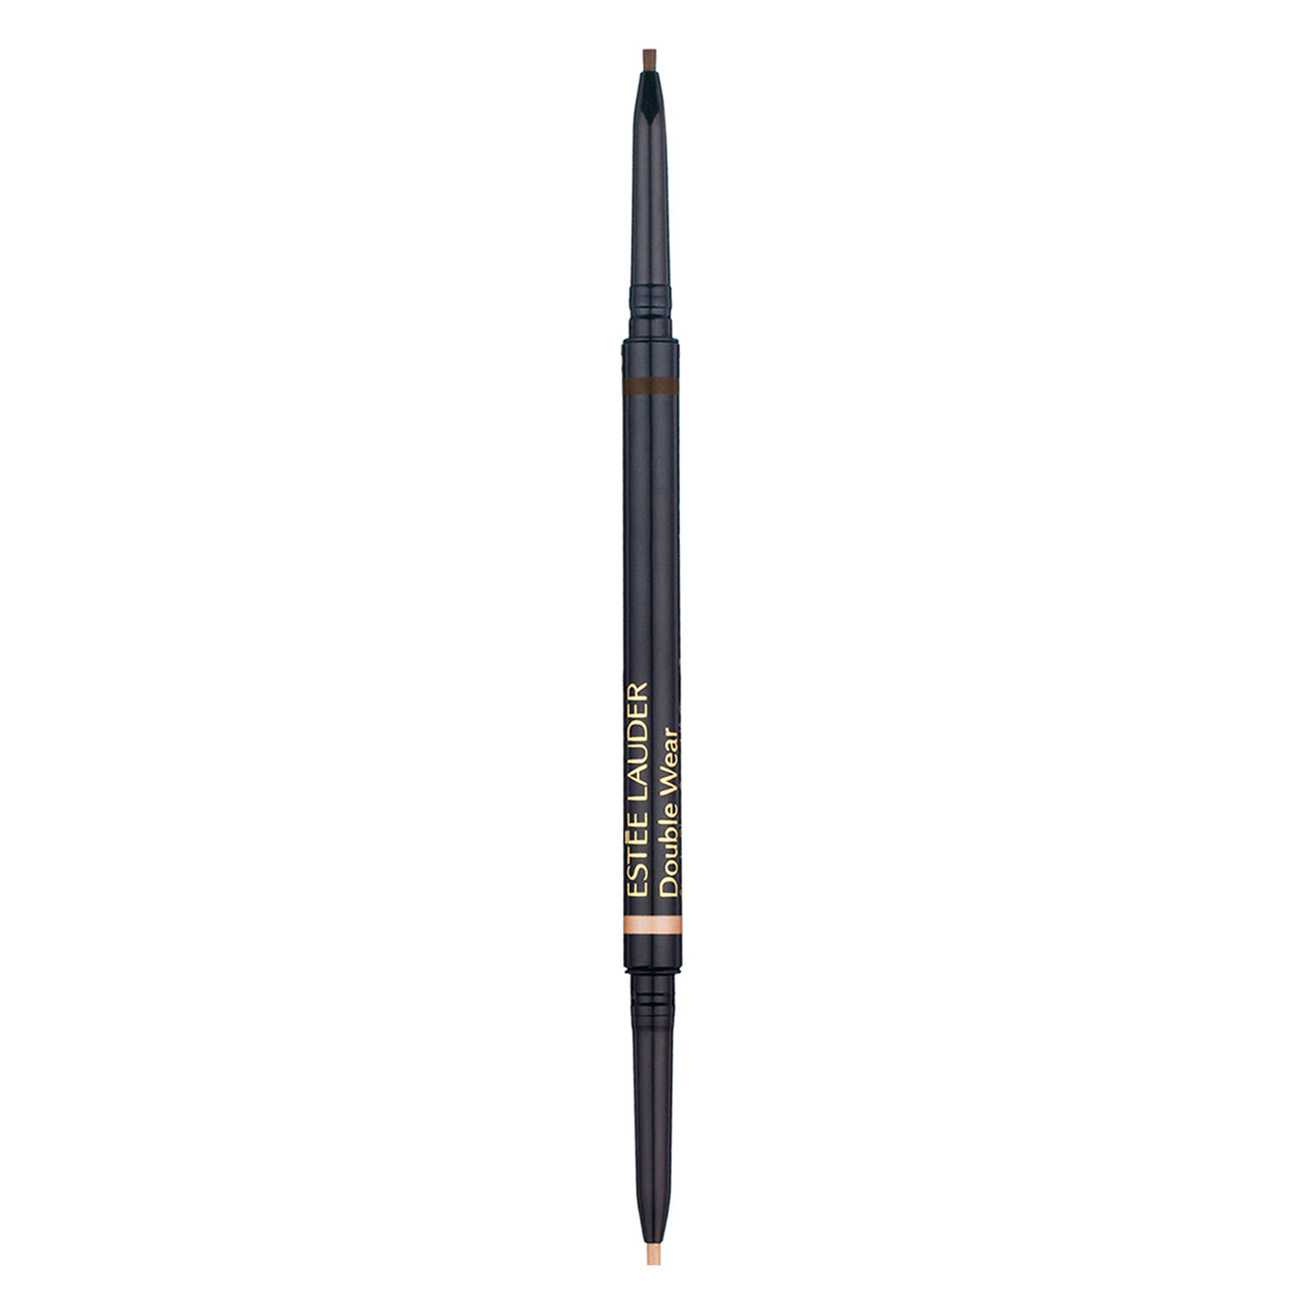 DOUBLE WEAR STAY-IN-PLACE BROW LIFT DUO 0.9 ML Rich Brown 2 imagine produs